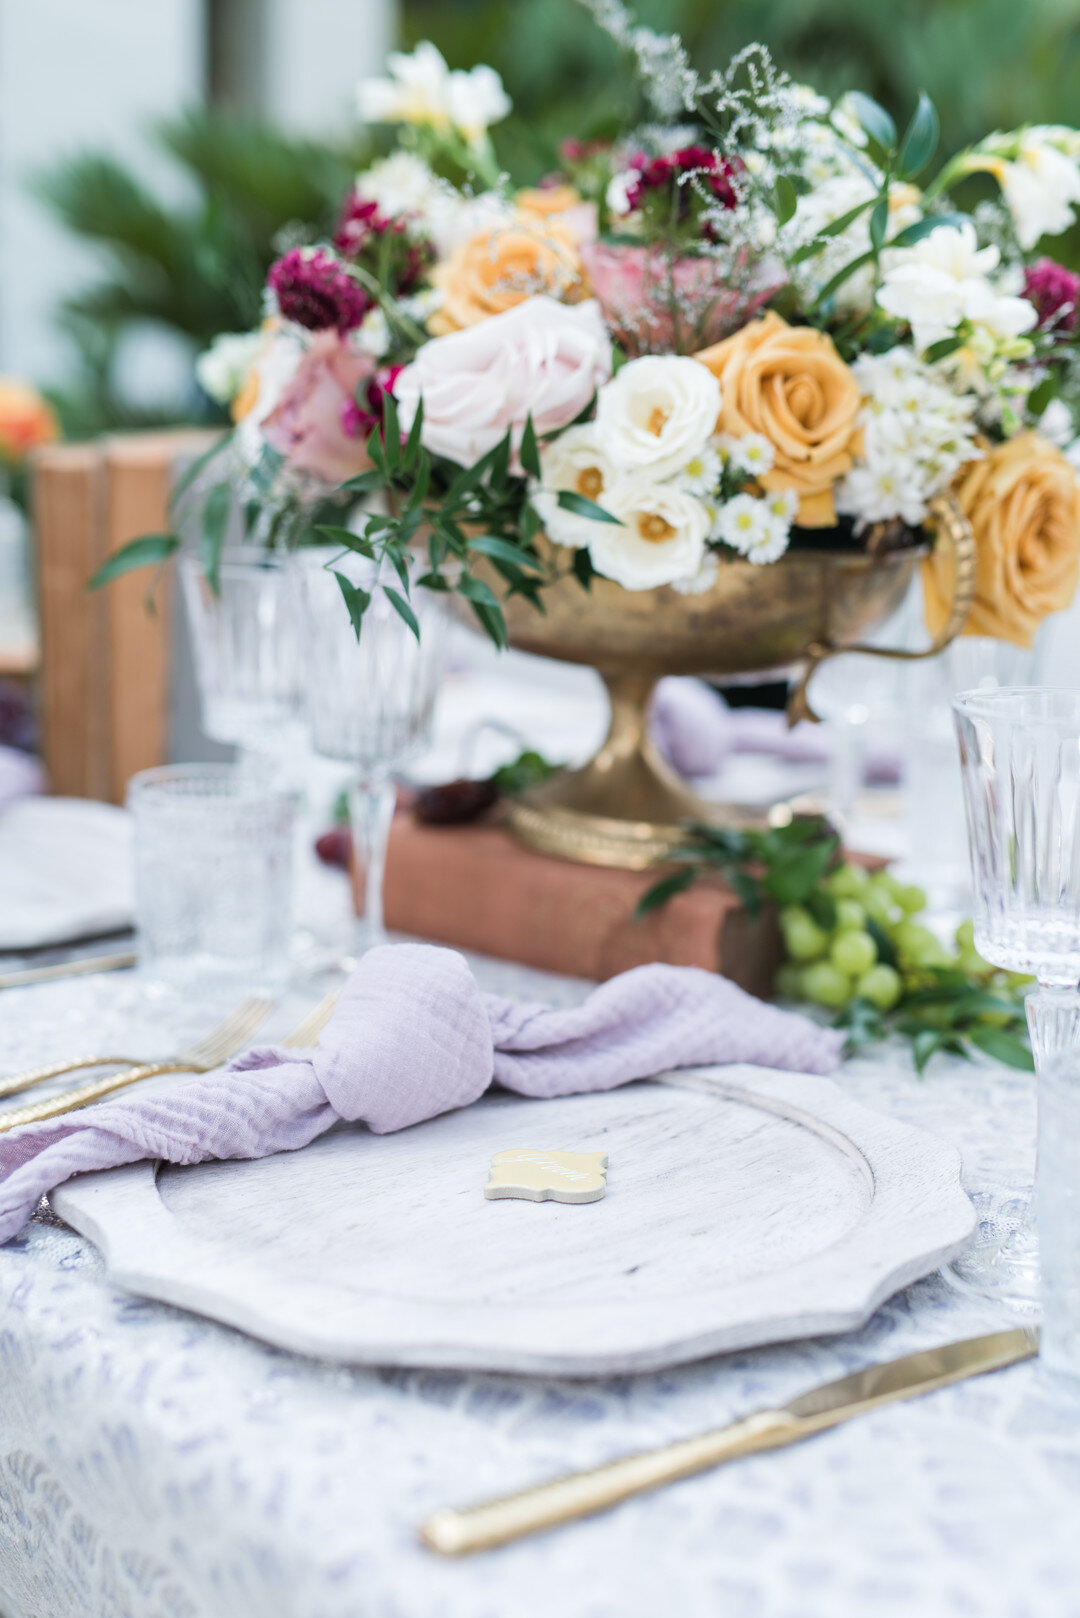 Vintage Southern Charm at Historic Bonnet House  & Gardens_Suzanne Lytle Photography_FortLauderdaleStylized240_big.JPG